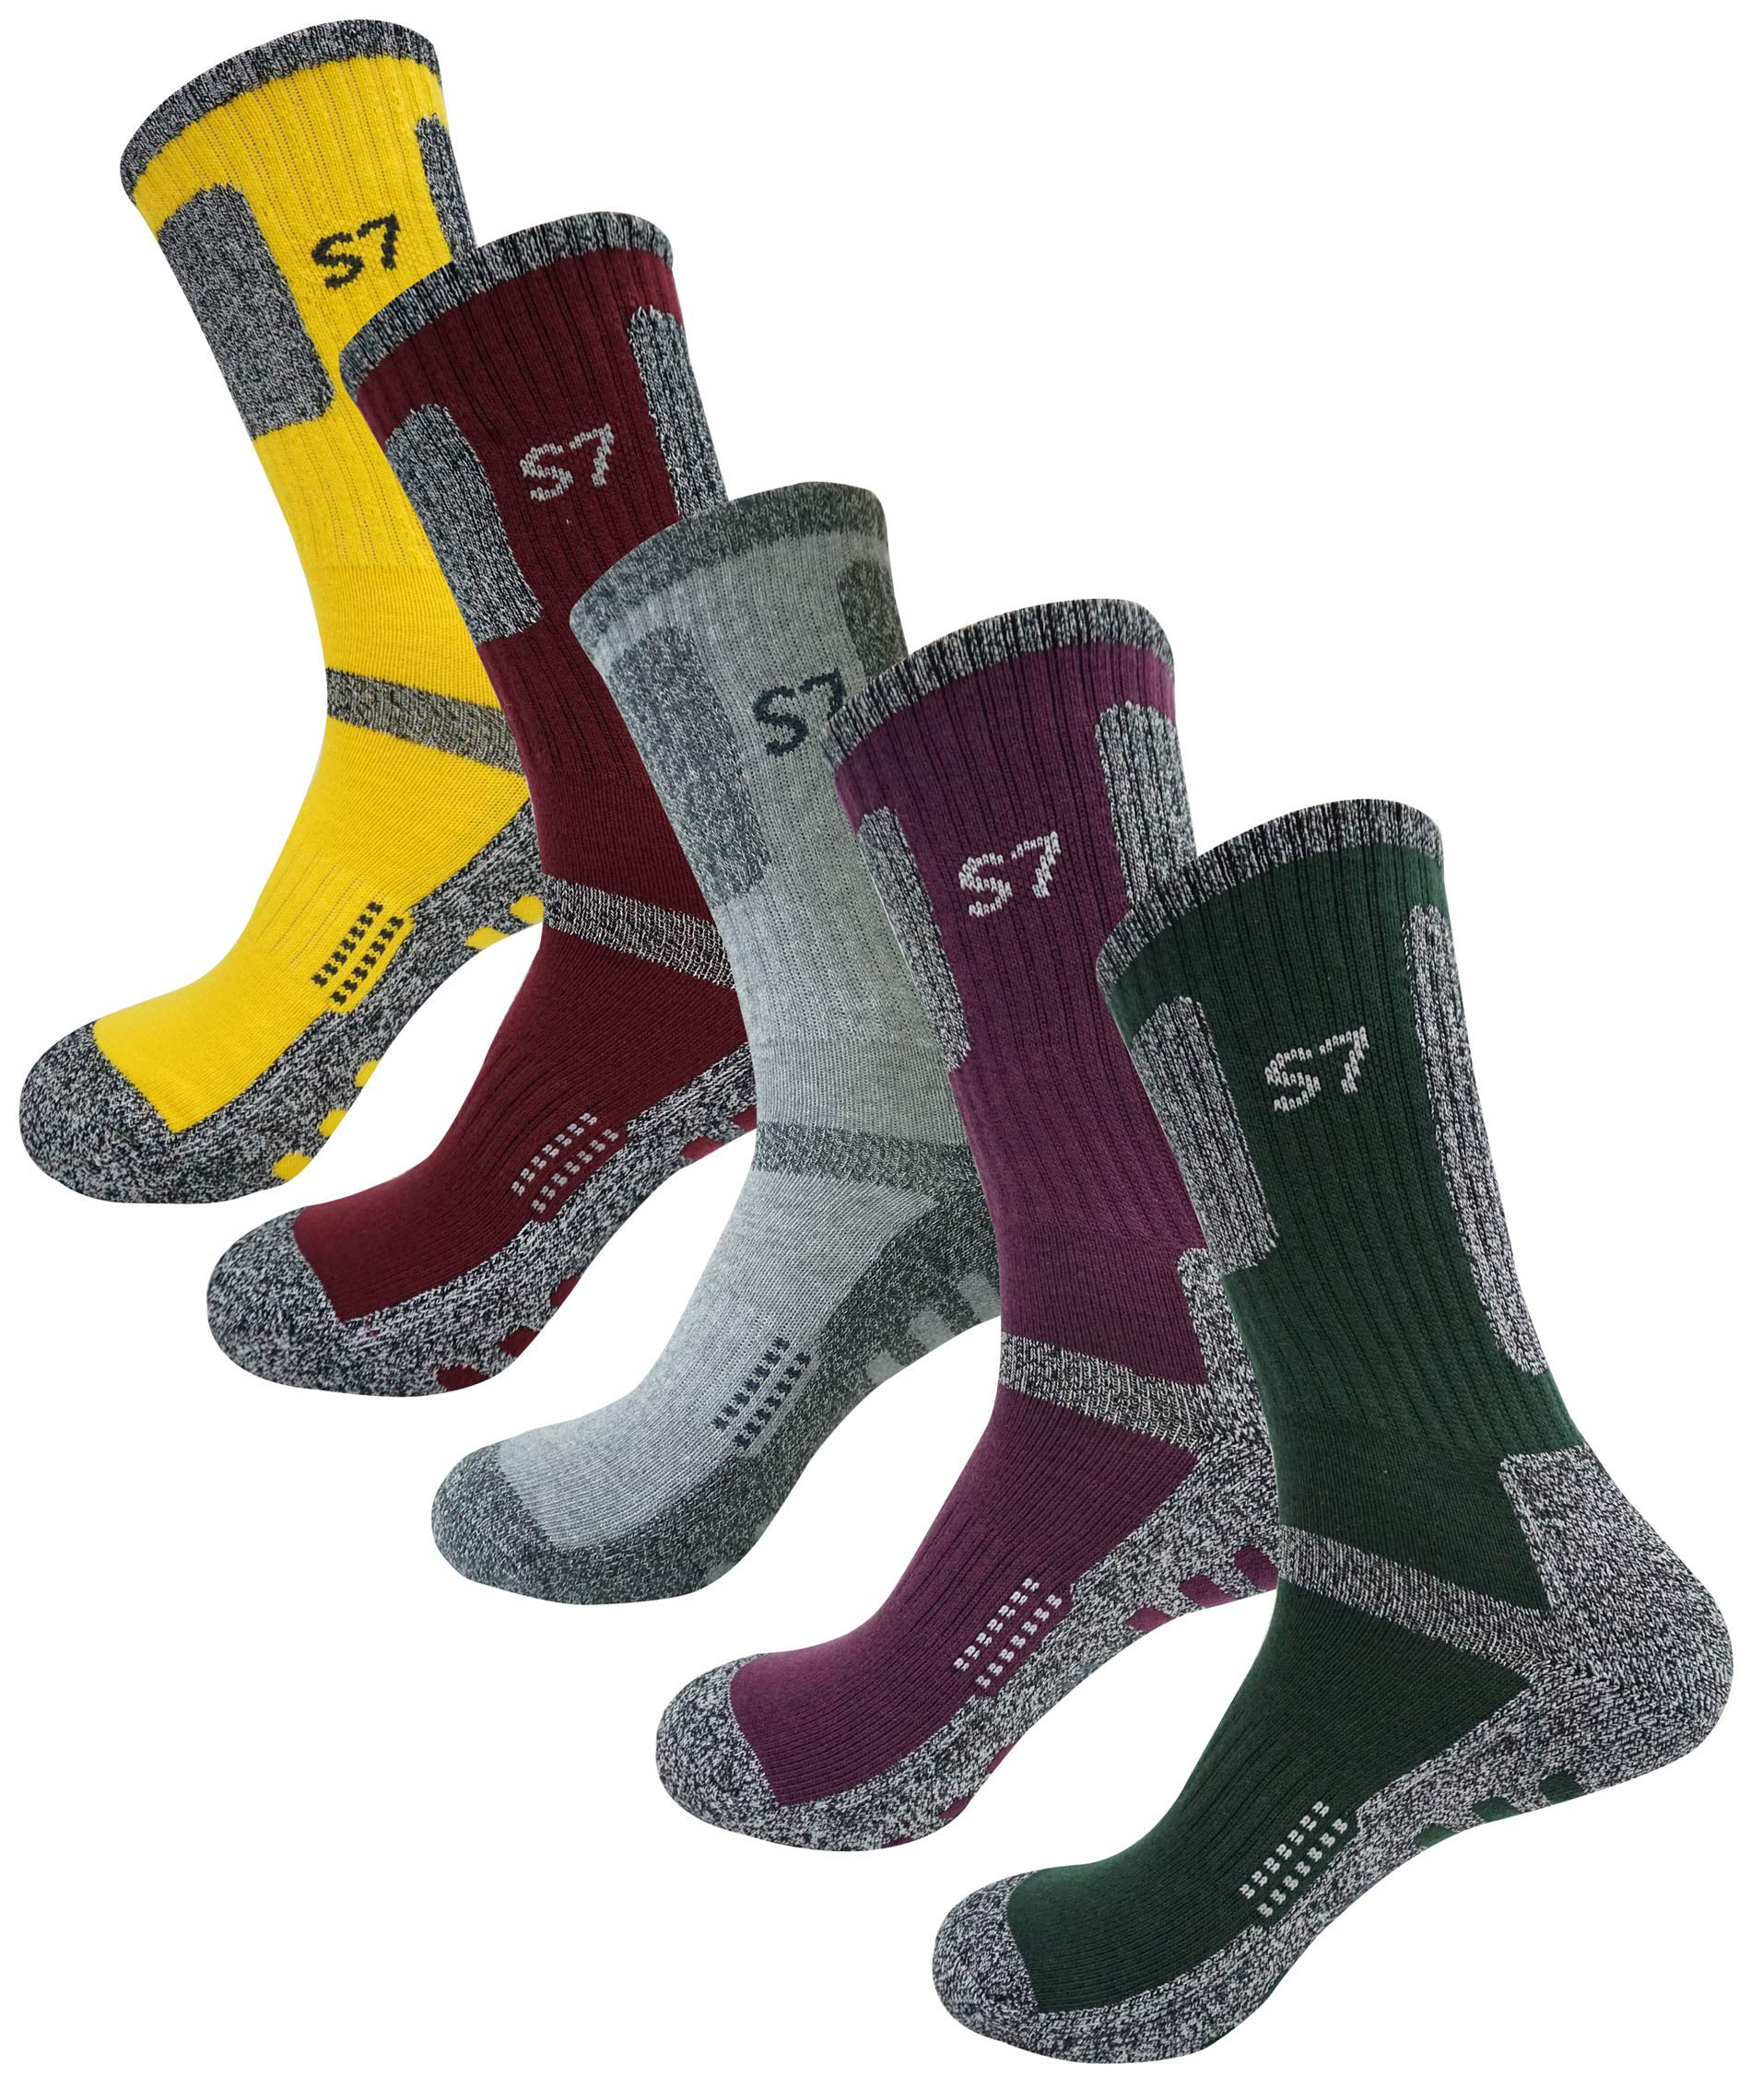 SEOULSTORY7 5Pack Men's Climbing DryCool Cushion Hiking/Performance Crew Socks Yellow/Burgundy/Light Gray/Purple/Green L3 by SEOULSTORY7